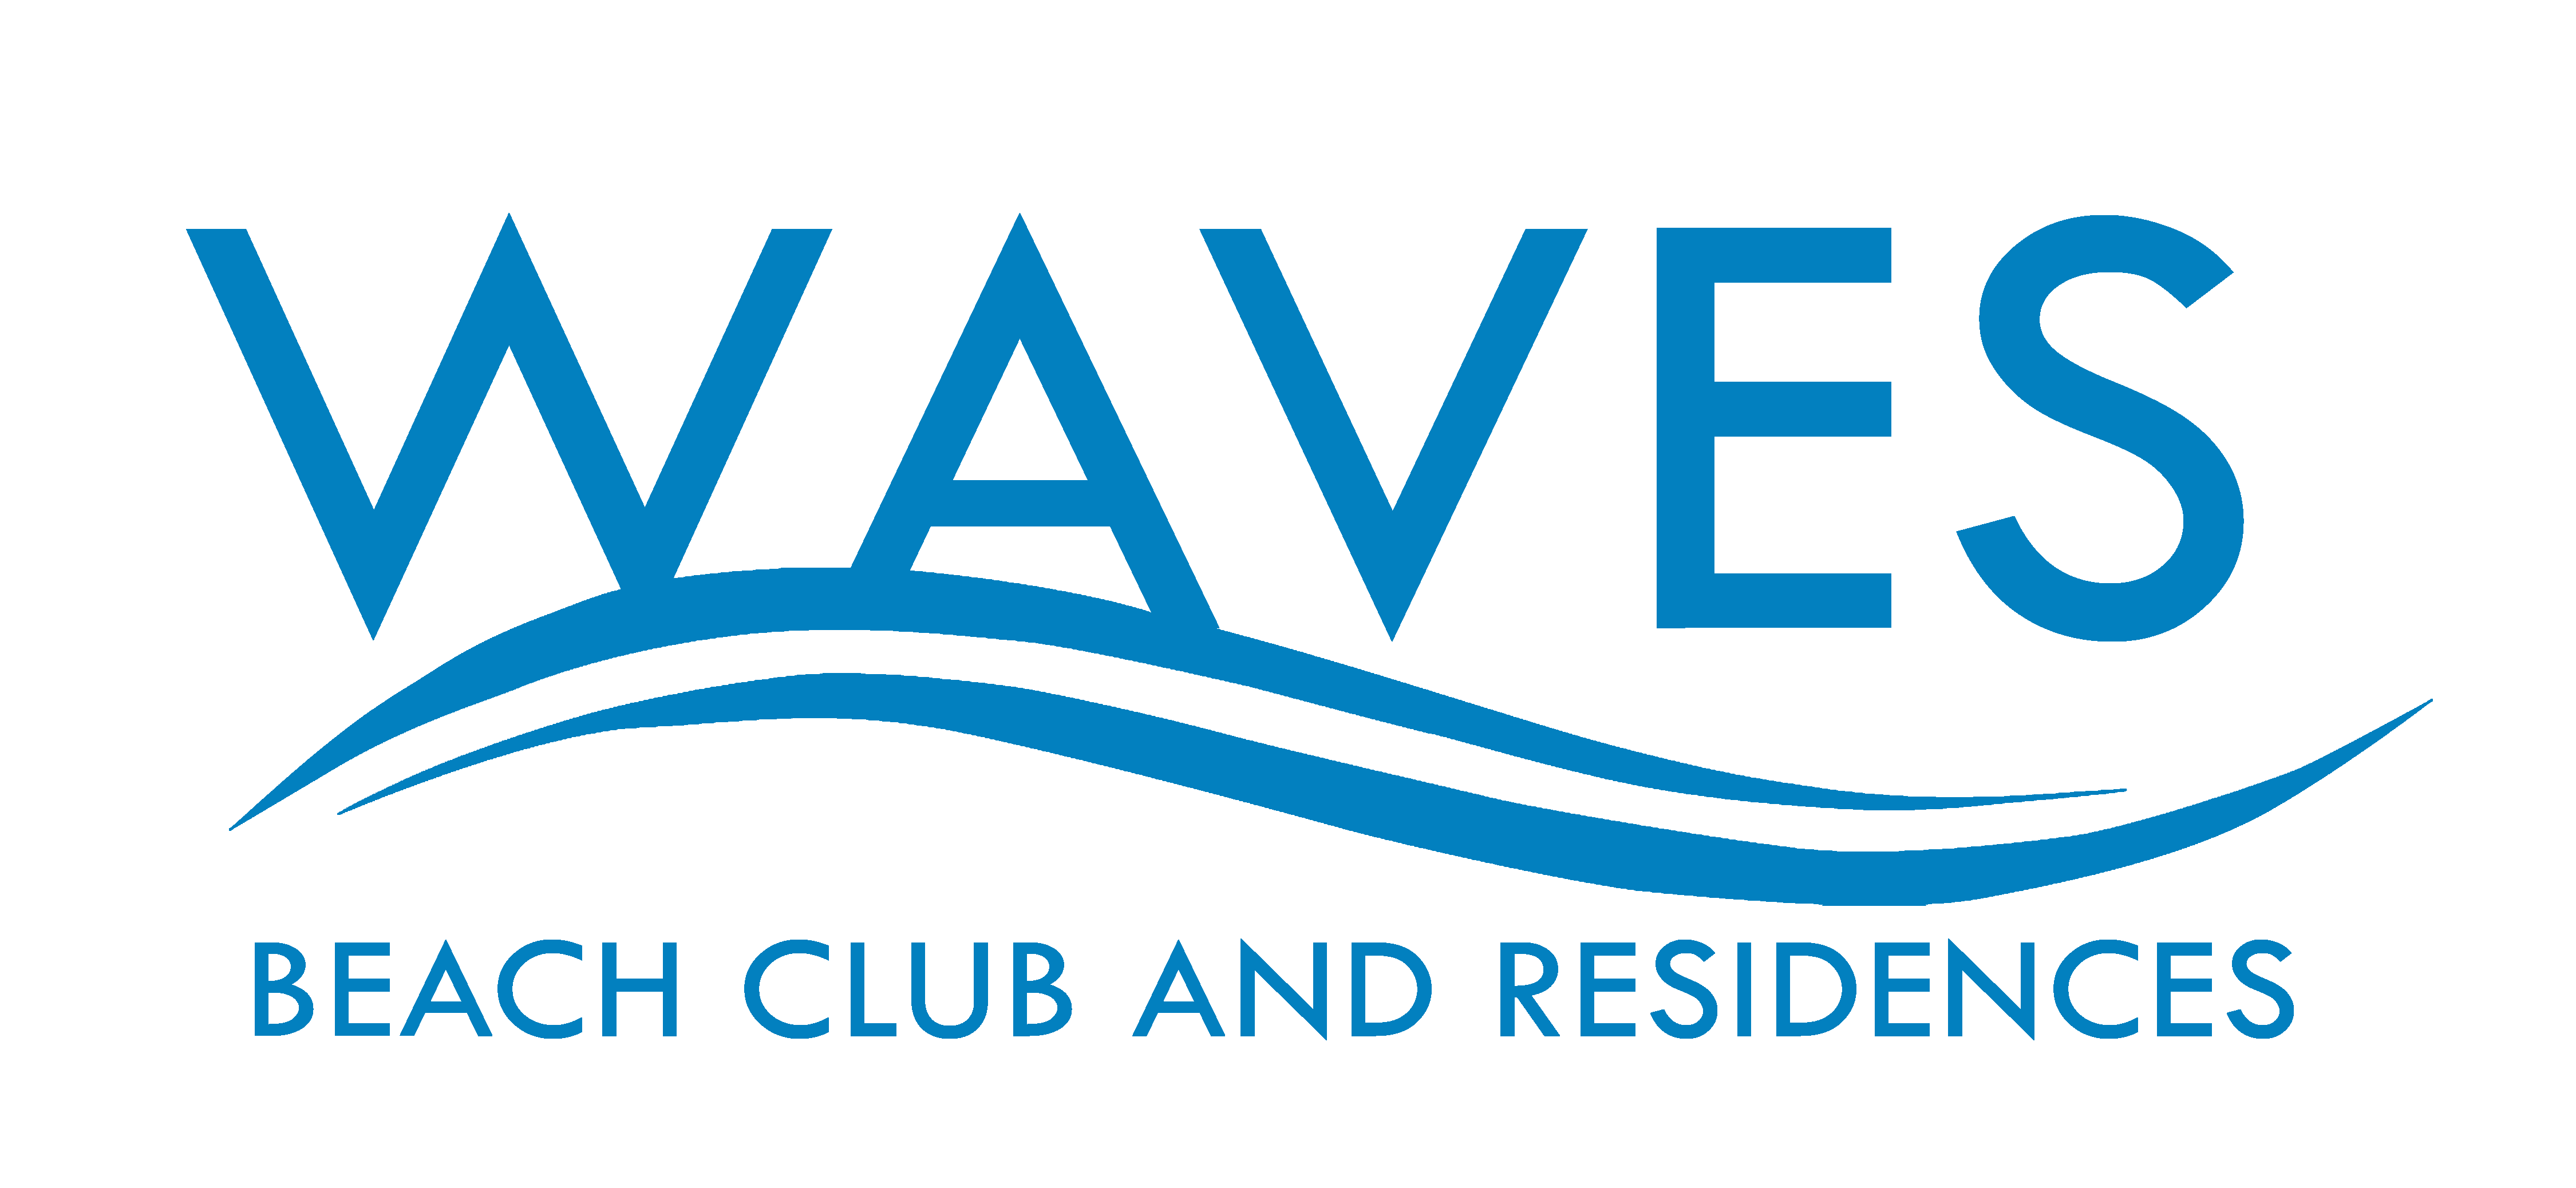 Waves logo png. Beach club and residences